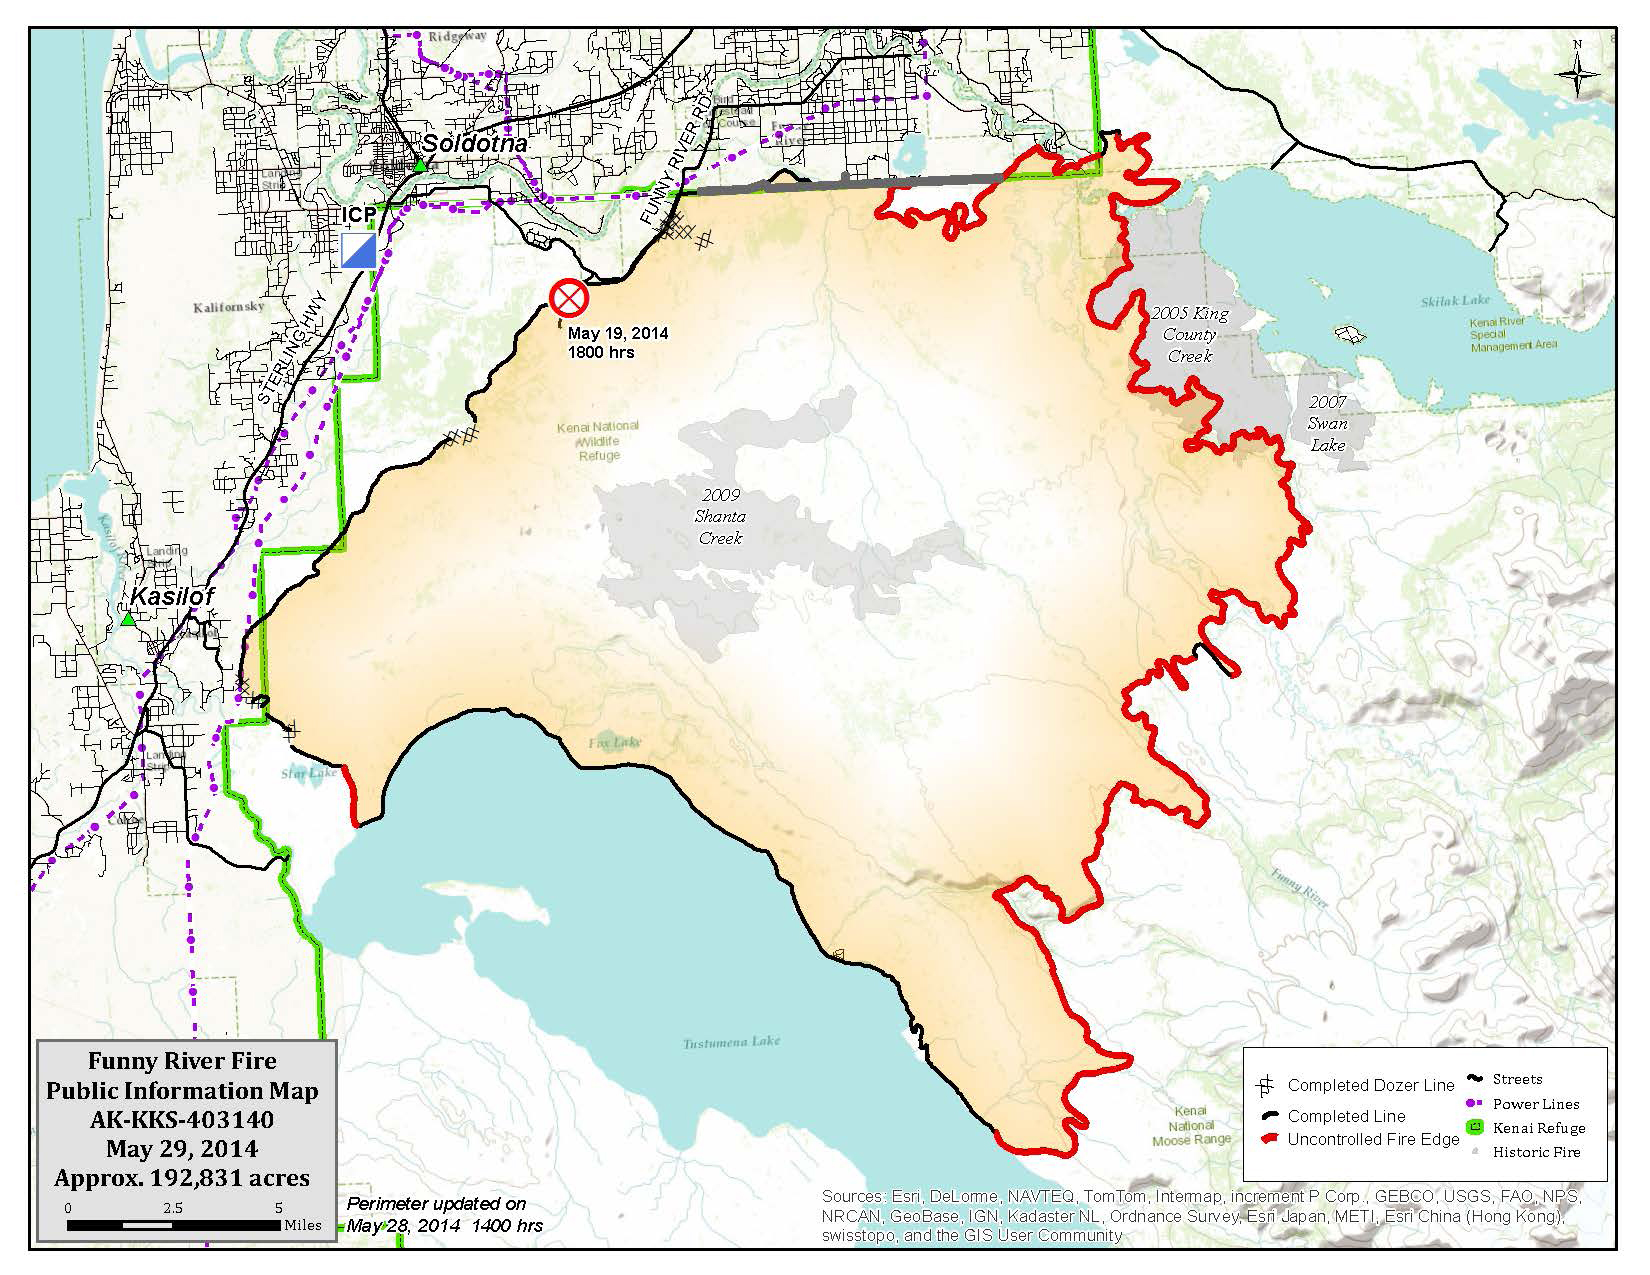 Funny River Fire Map May 29 2014